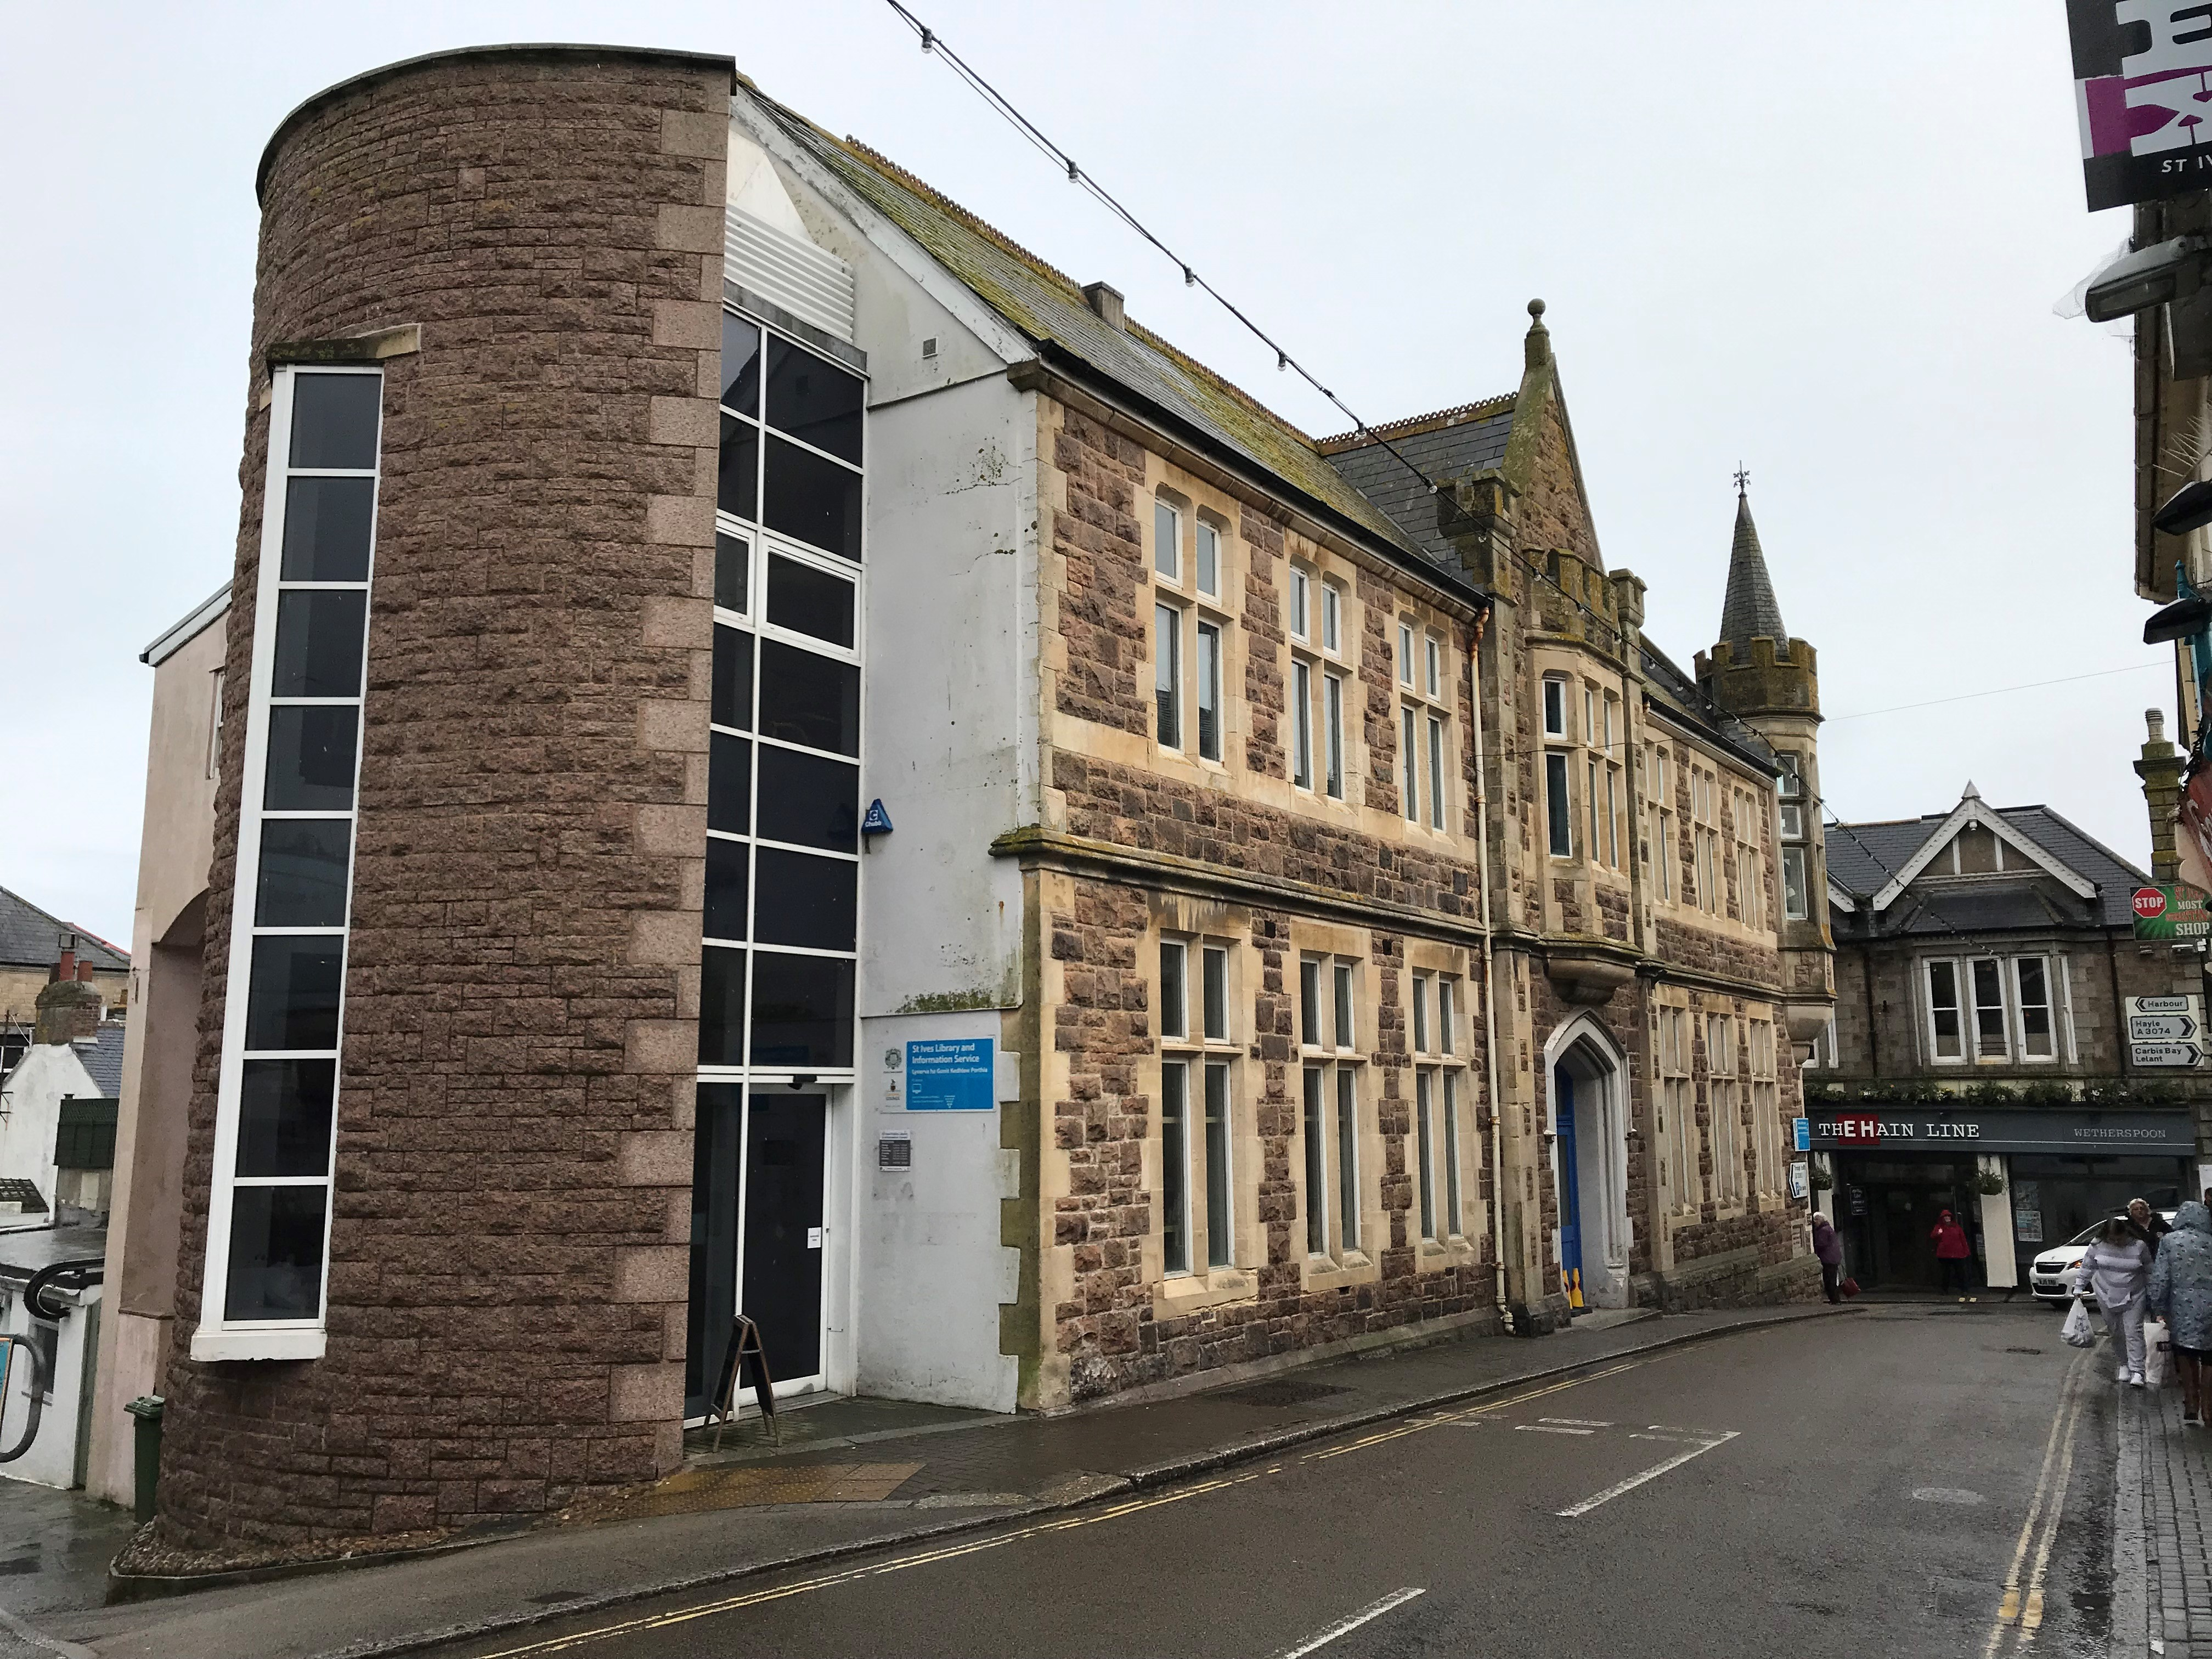 St Ives Library and Information Service building